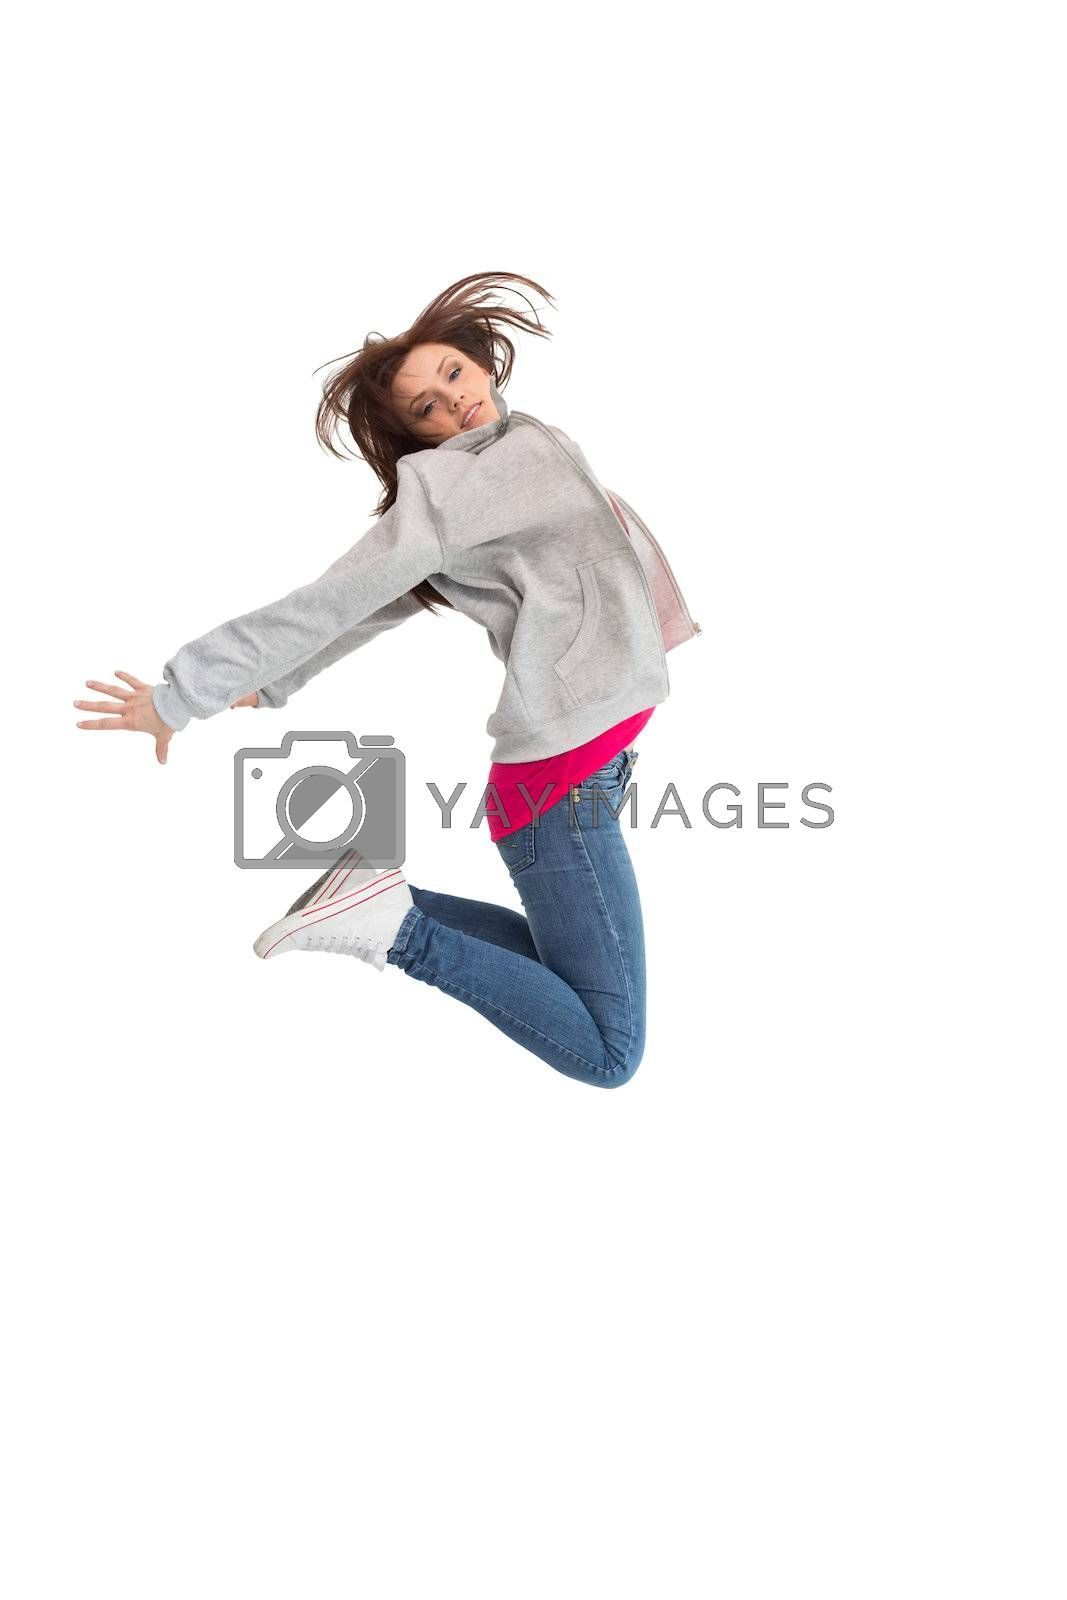 Pretty young woman jumping by Wavebreakmedia